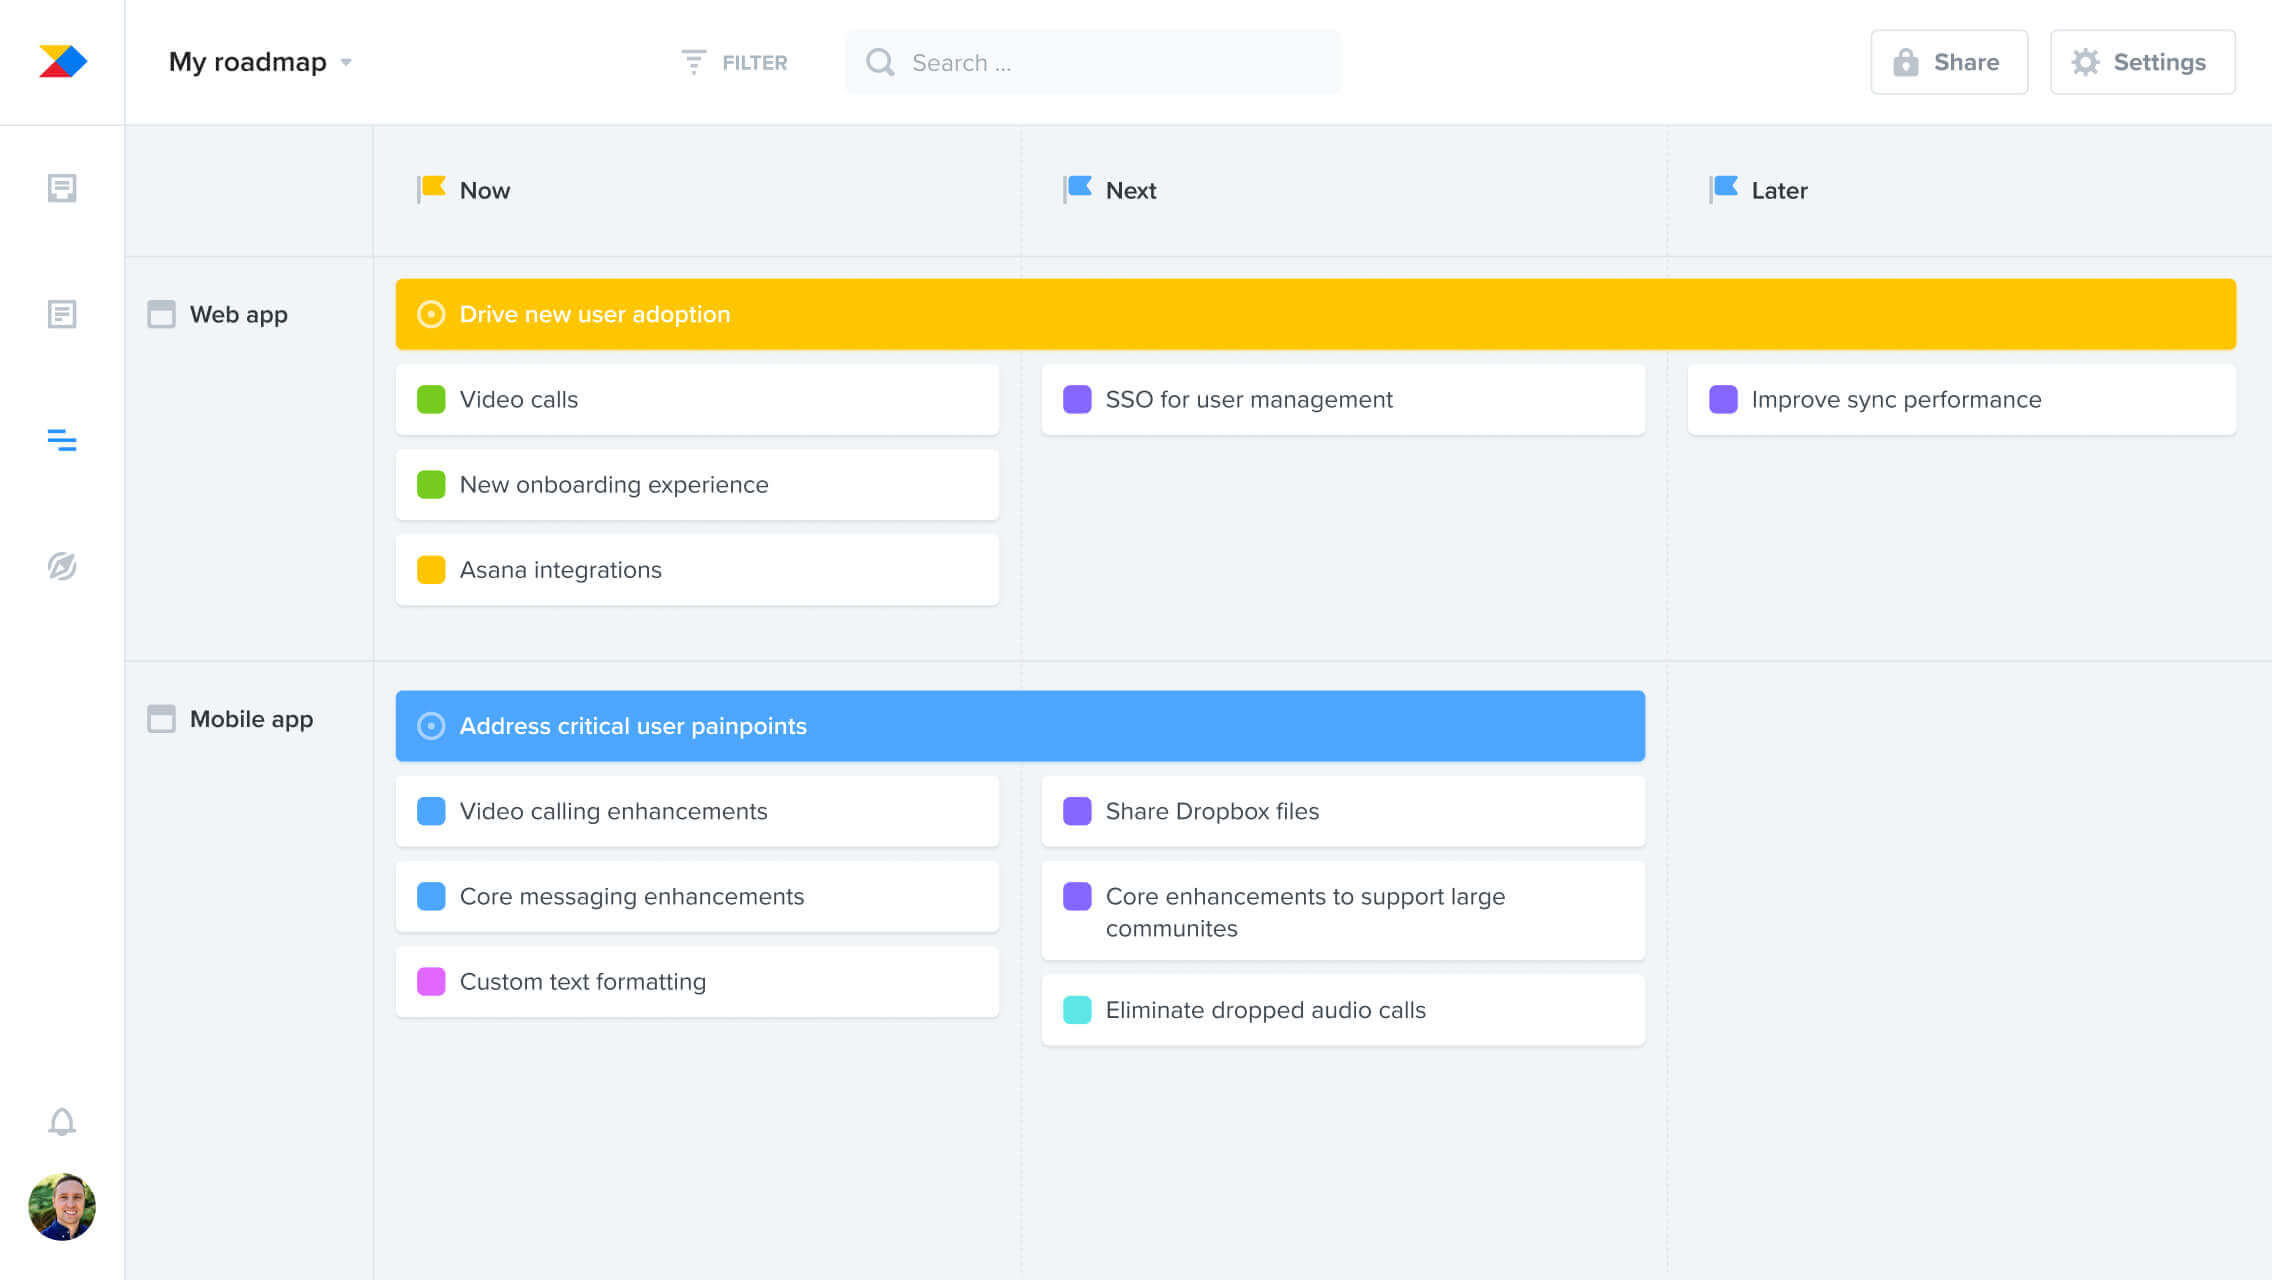 Now-Next-Later Roadmap Template